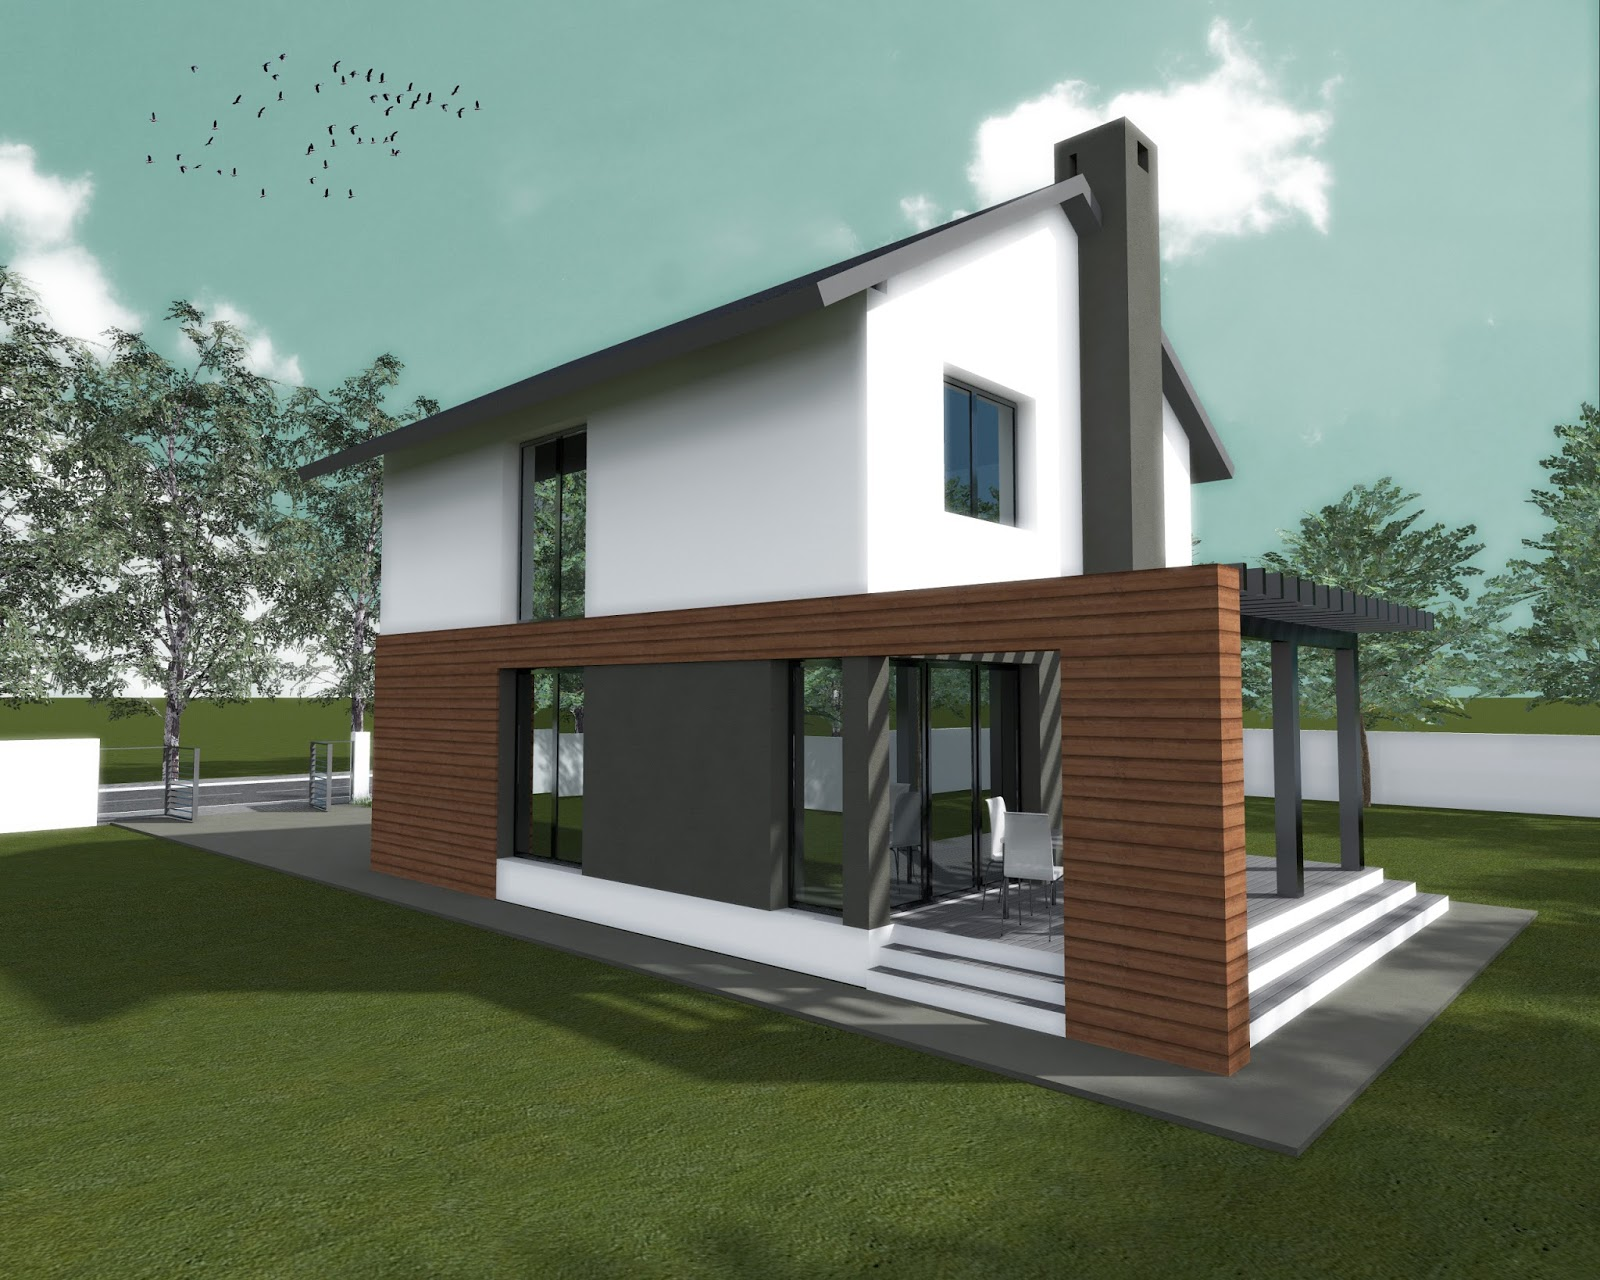 Simple two storey dream home for every filipino free home for Simple two story house